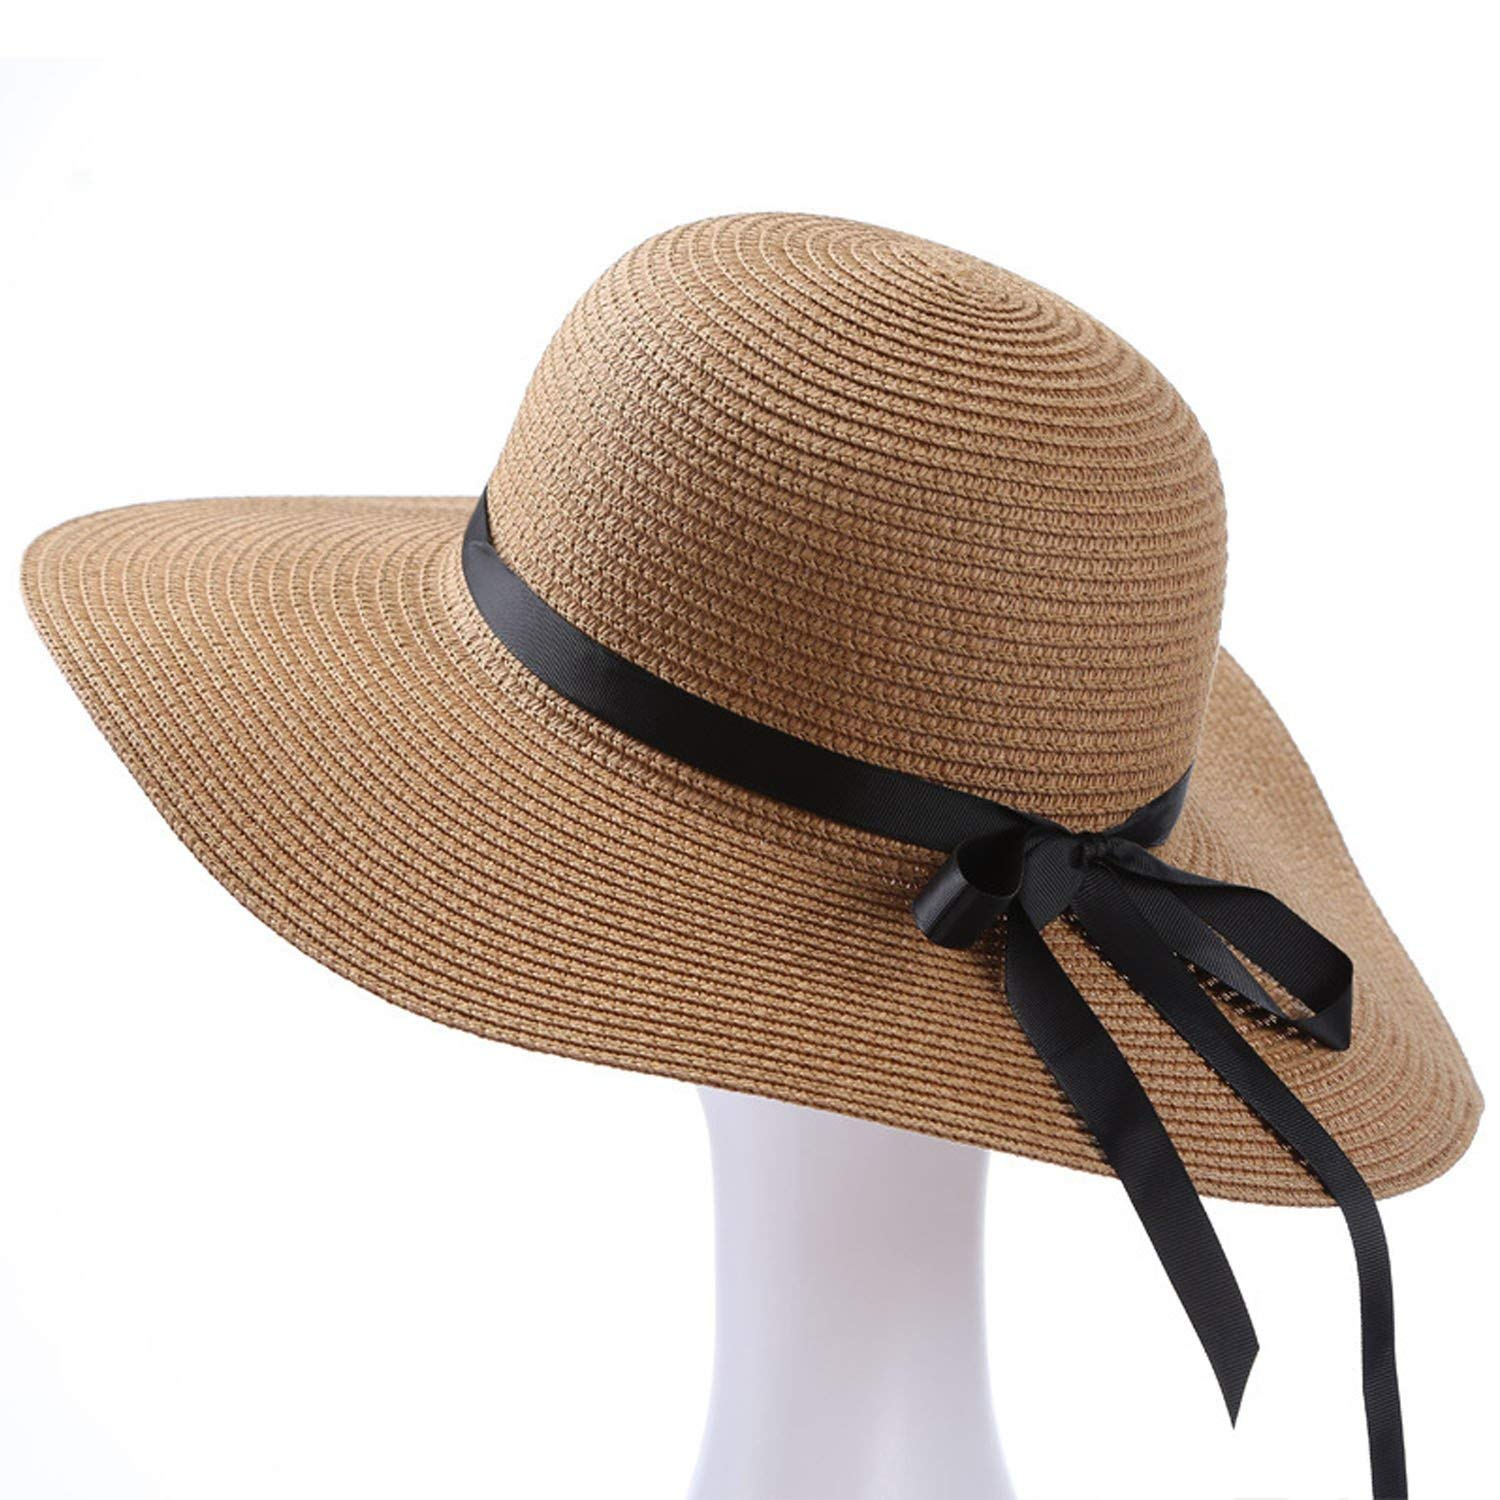 fca48bf4 Get Quotations · Women's Big Wide Brim Sun Hat Floppy Foldable Bowknot  Straw Hat Roll up Beach Cap